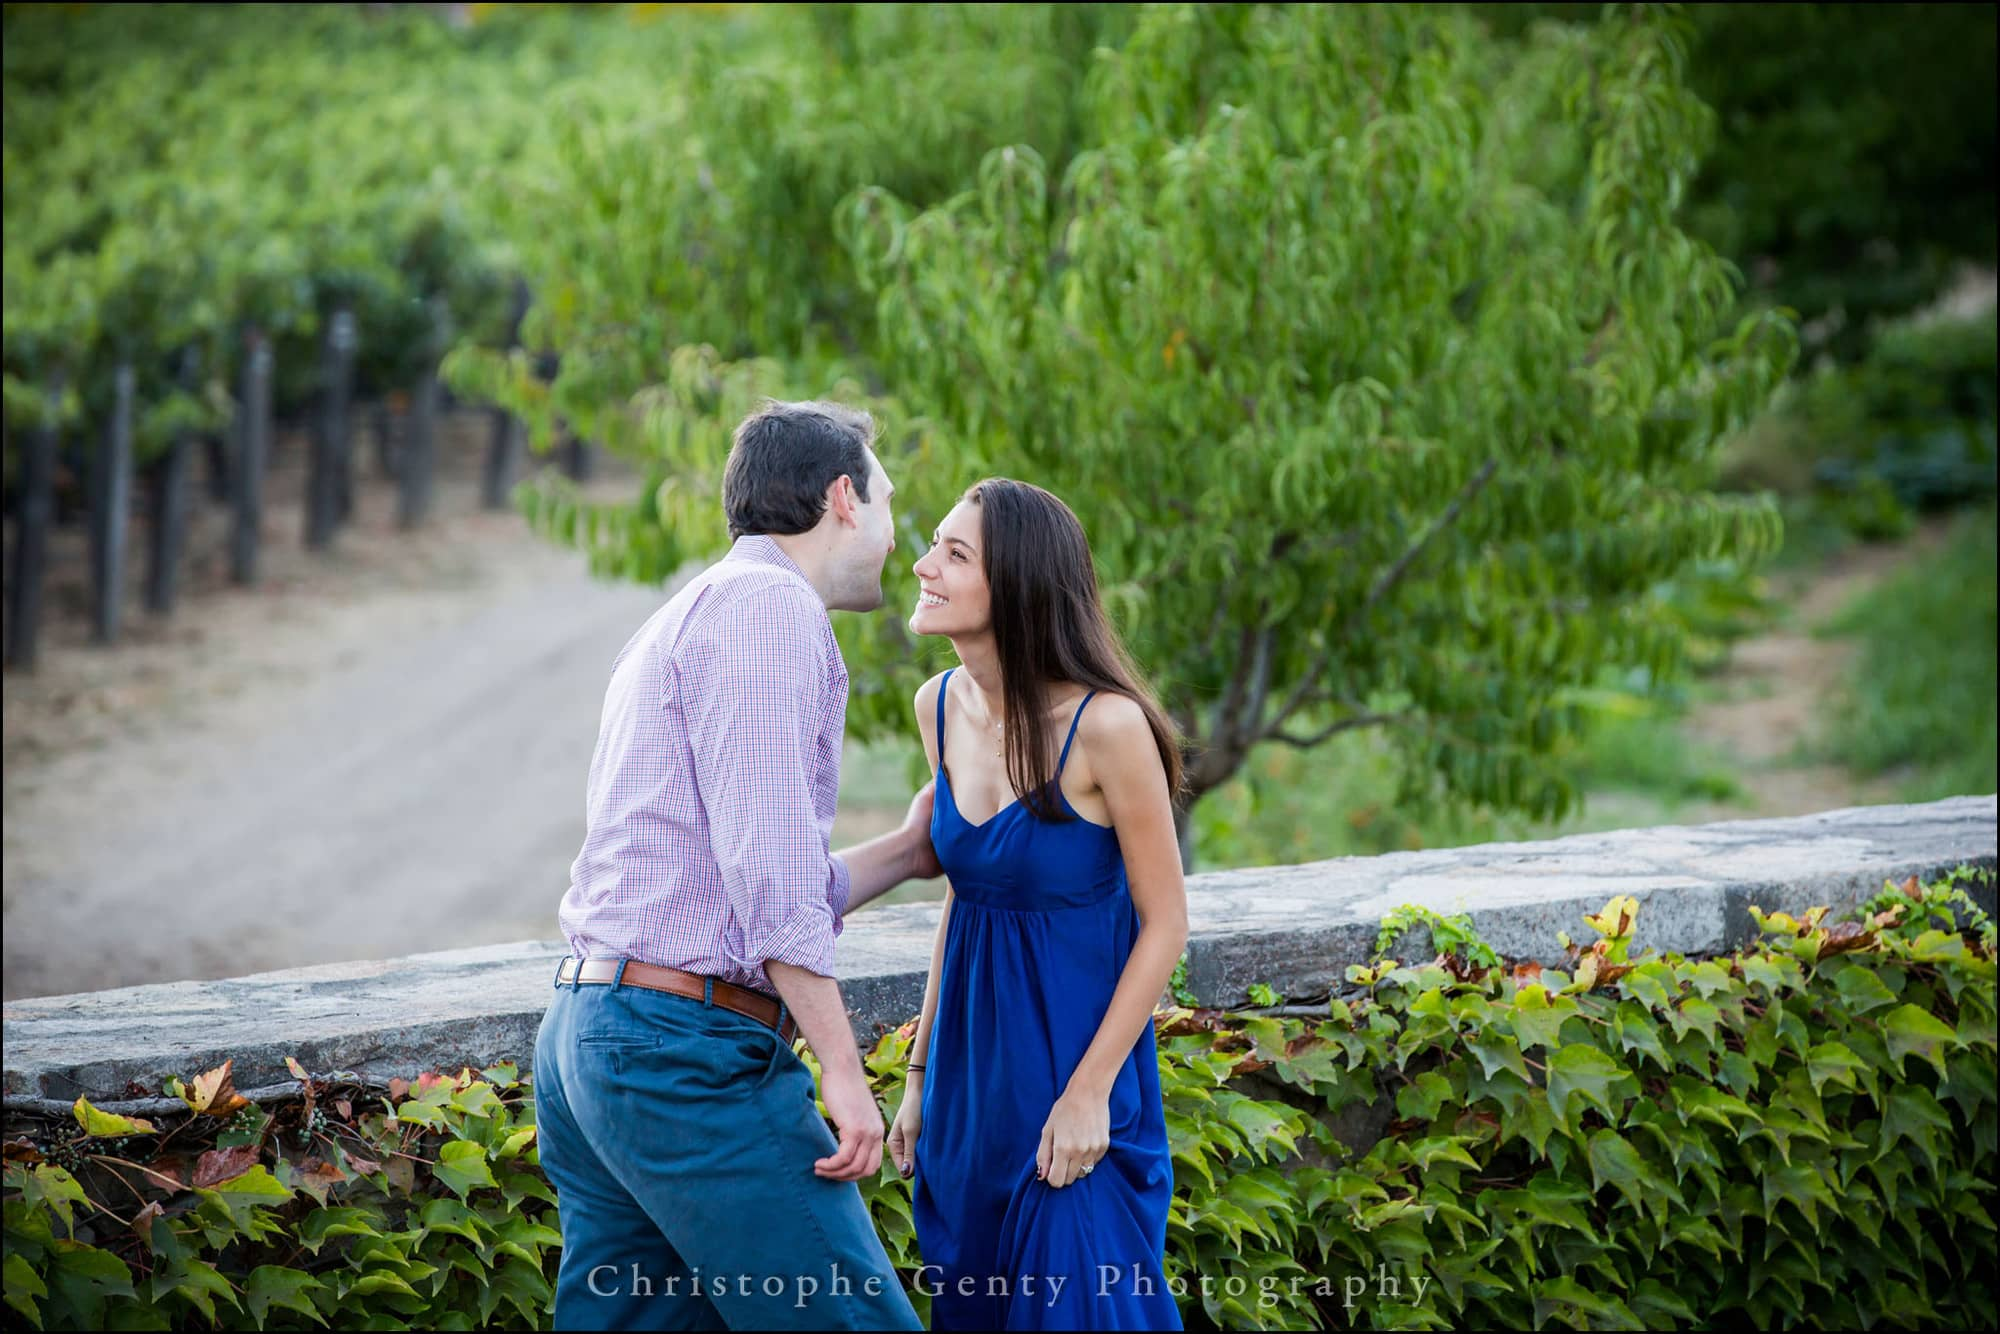 Marriage Proposal Photography in the Napa Valley Amizetta Winery